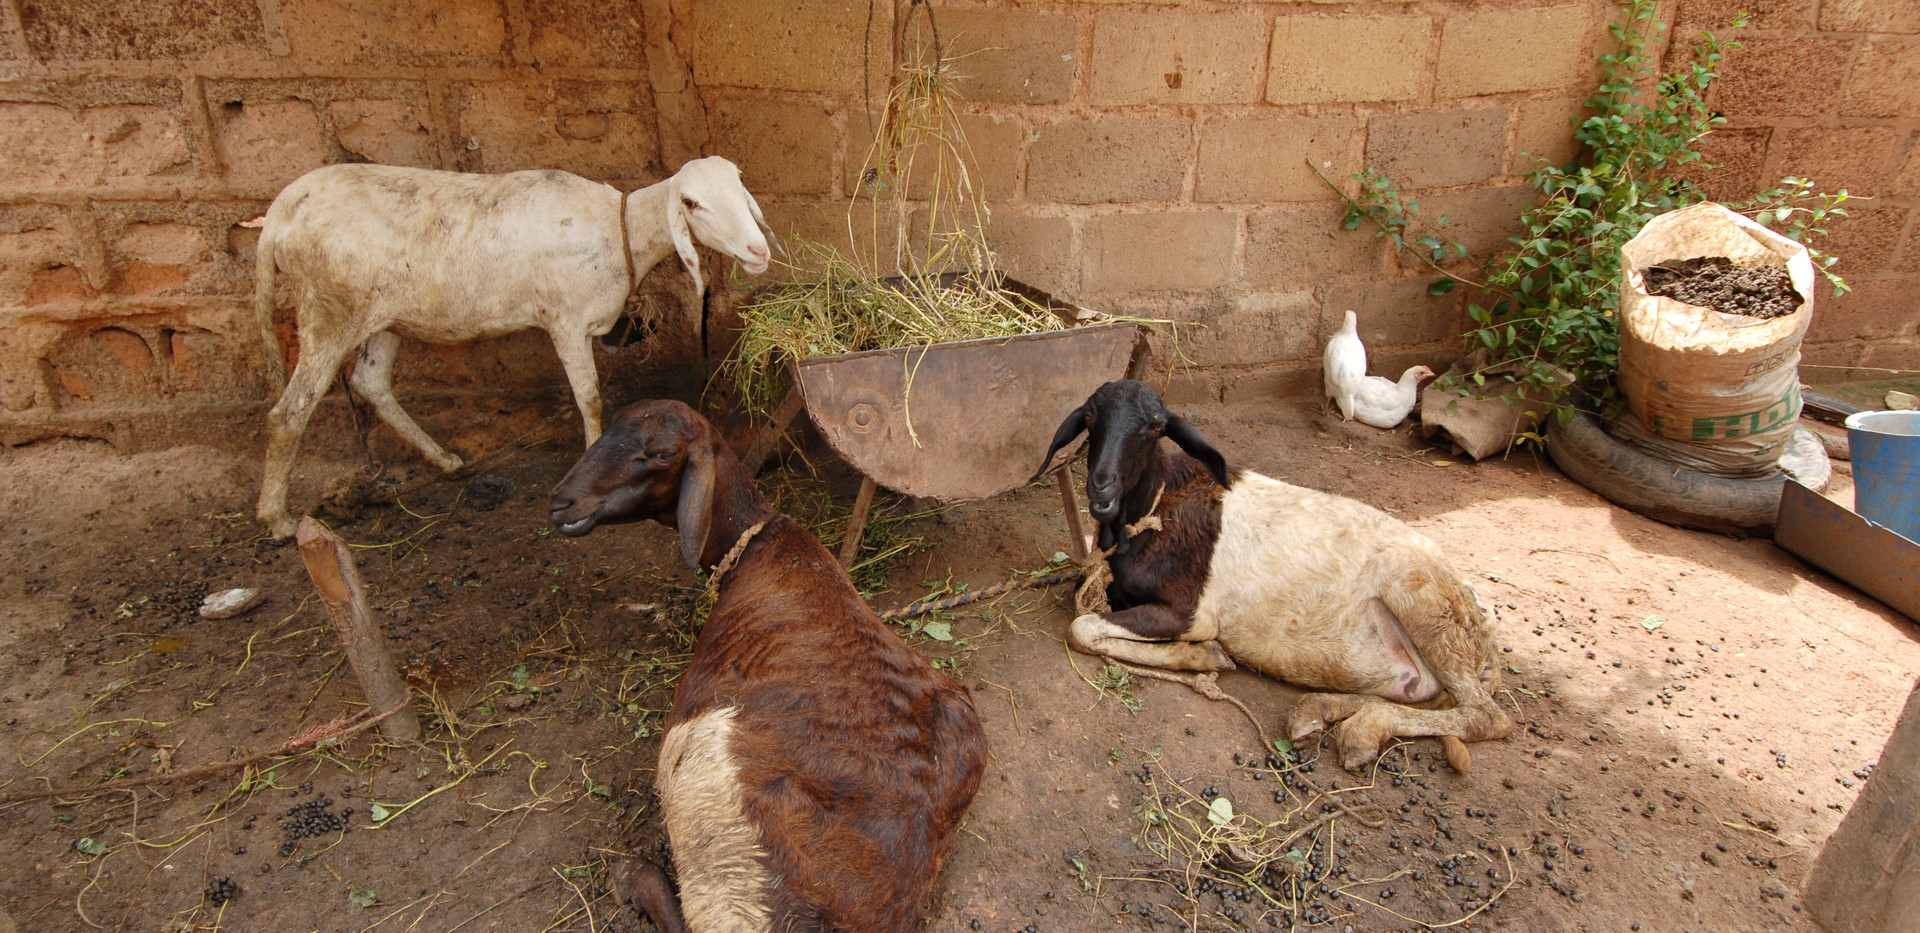 goats_burkina.jpeg